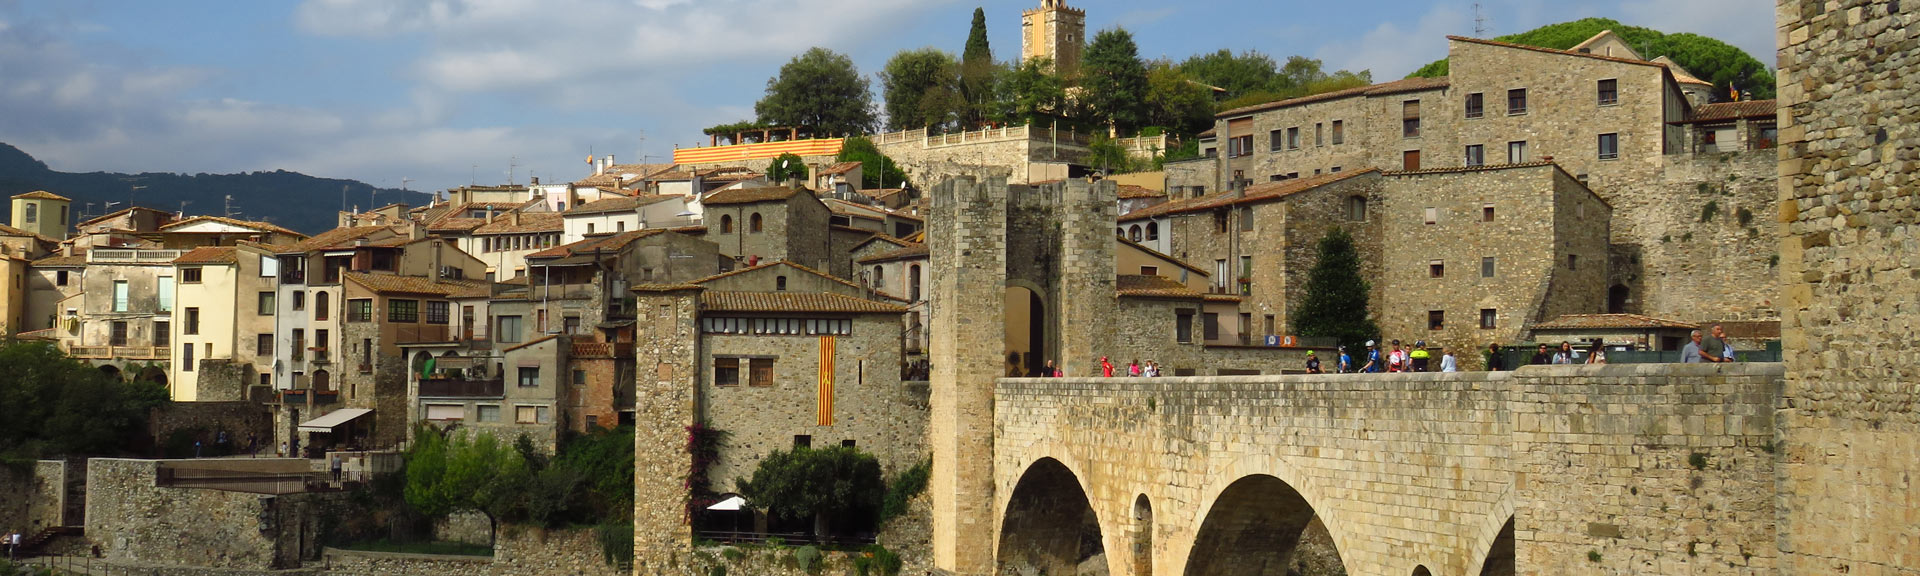 Bikecat Custom Cycling Tours - Girona Medieval Villages